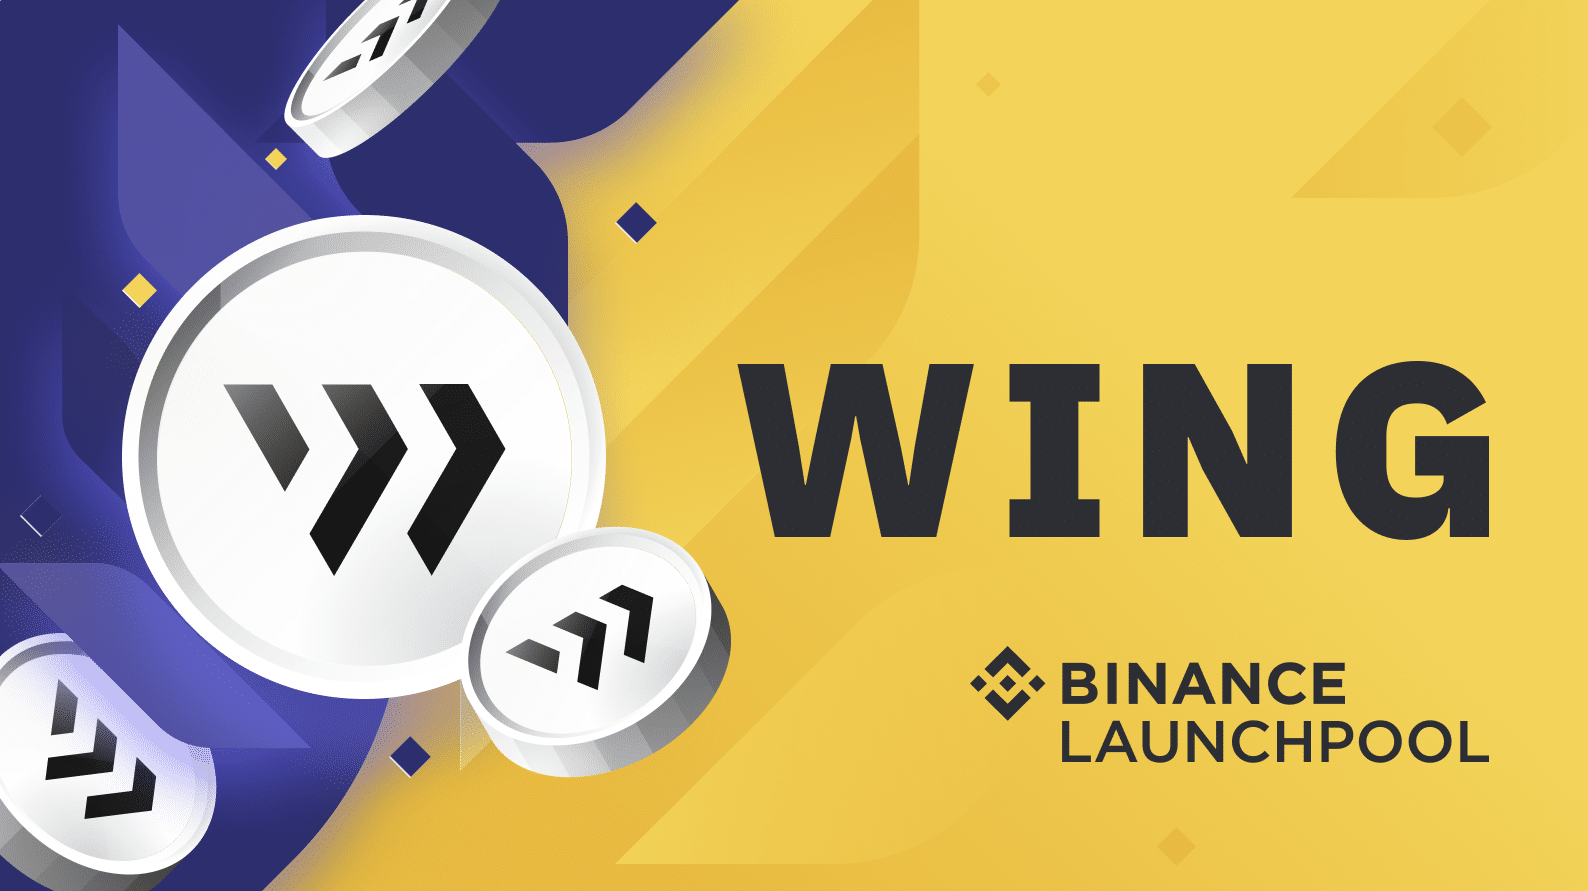 Binance Launchpool launches Wing project